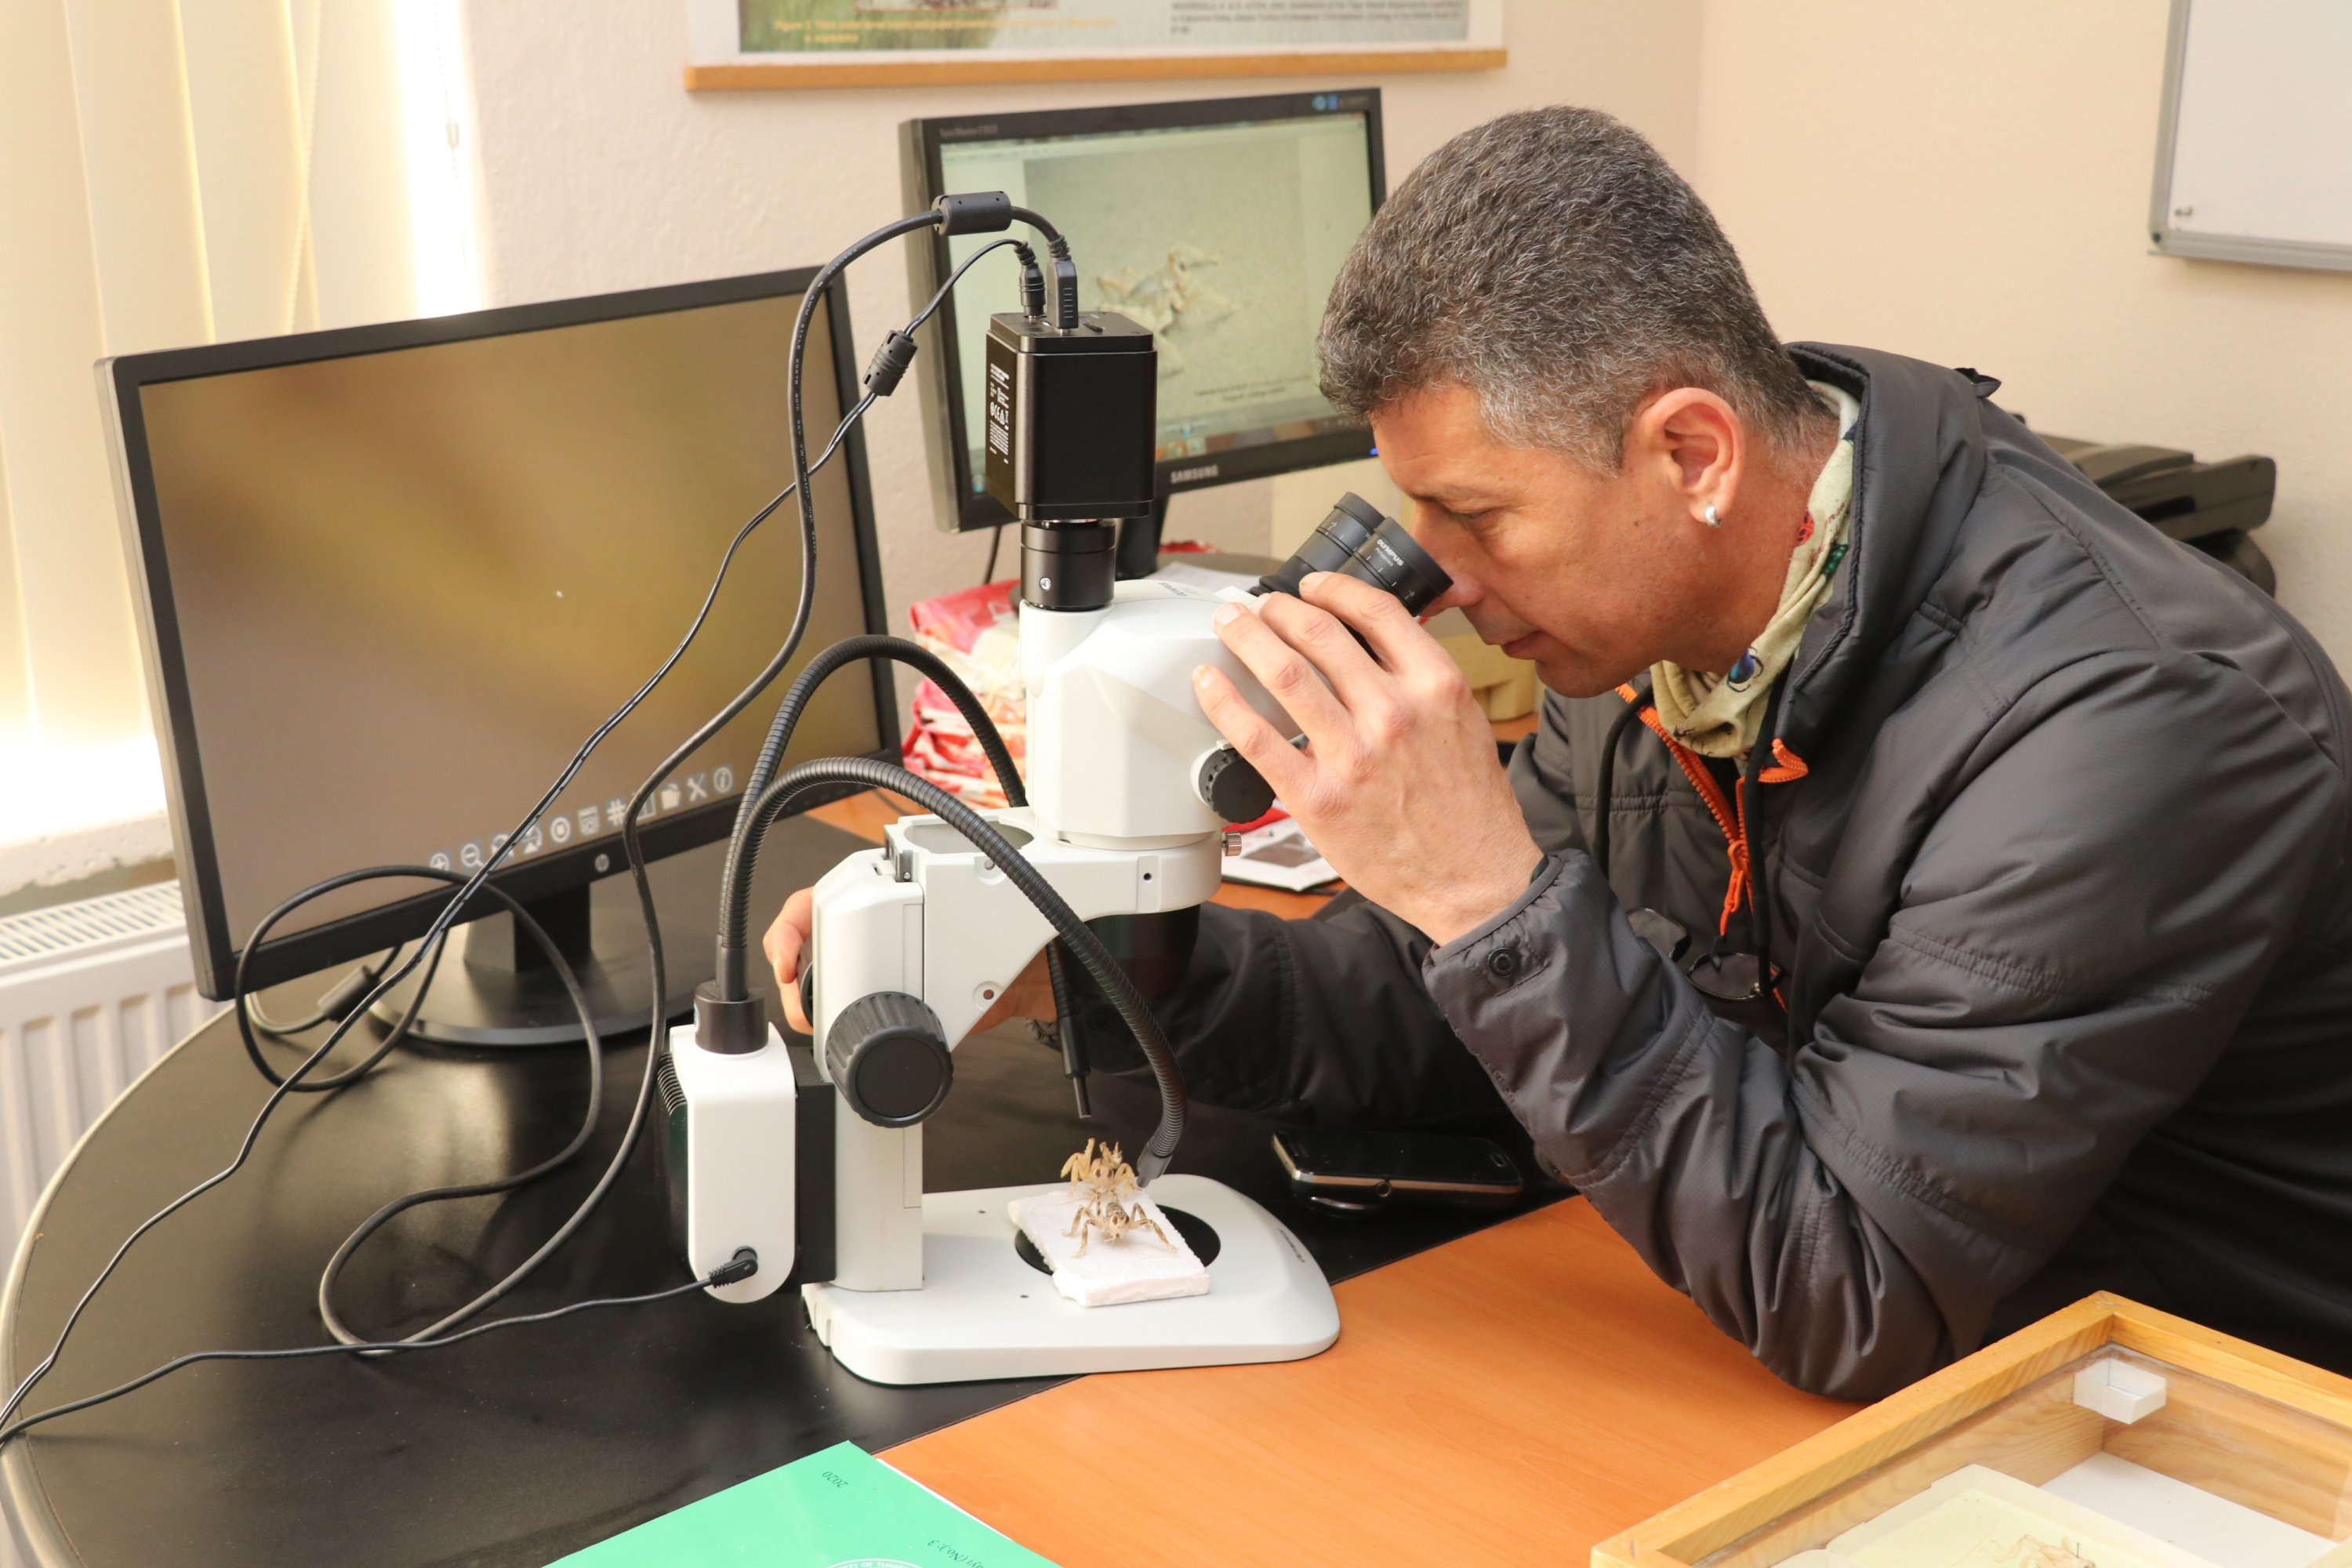 Professor Gökhan Aydın inspects a dune cricket with a microscope at the Isparta University of Applied Sciences, in Isparta, western Turkey, Feb. 23, 2021. (AA Photo)